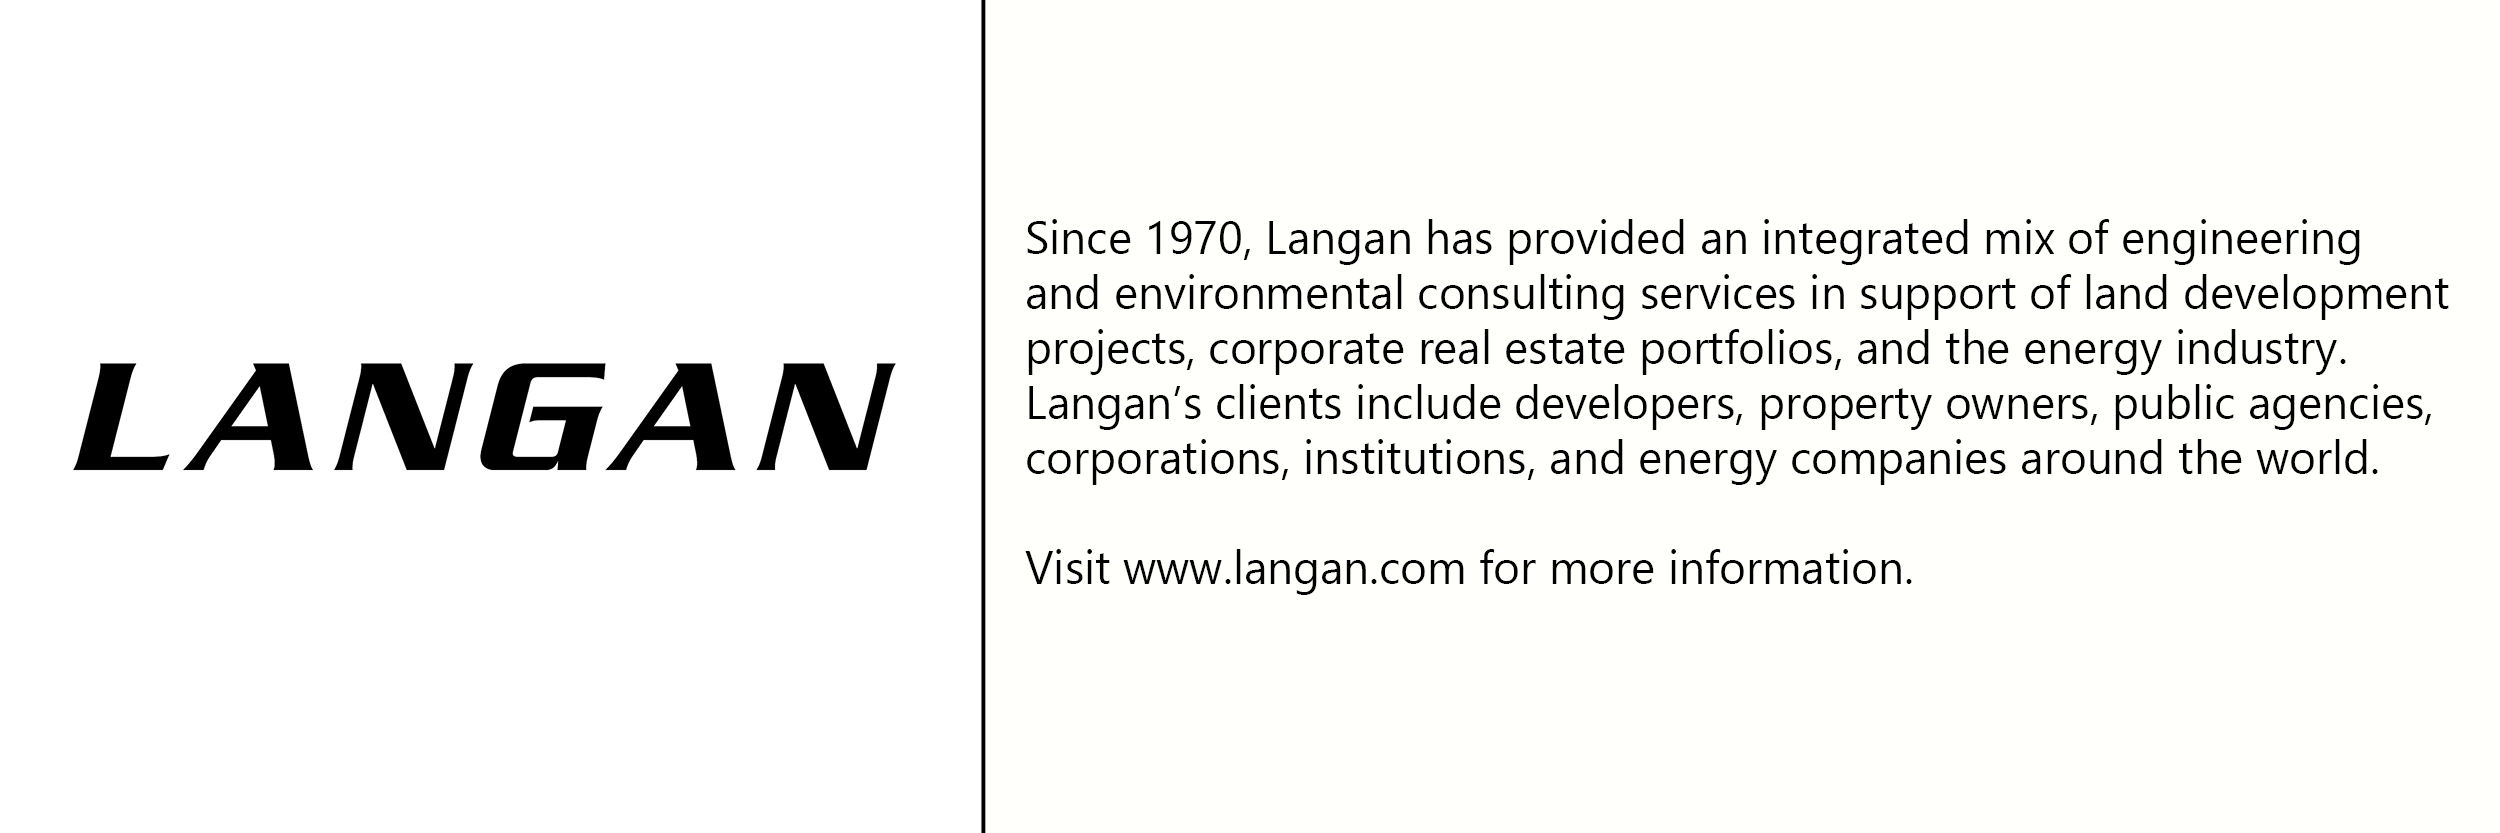 Langan  logo with description of company